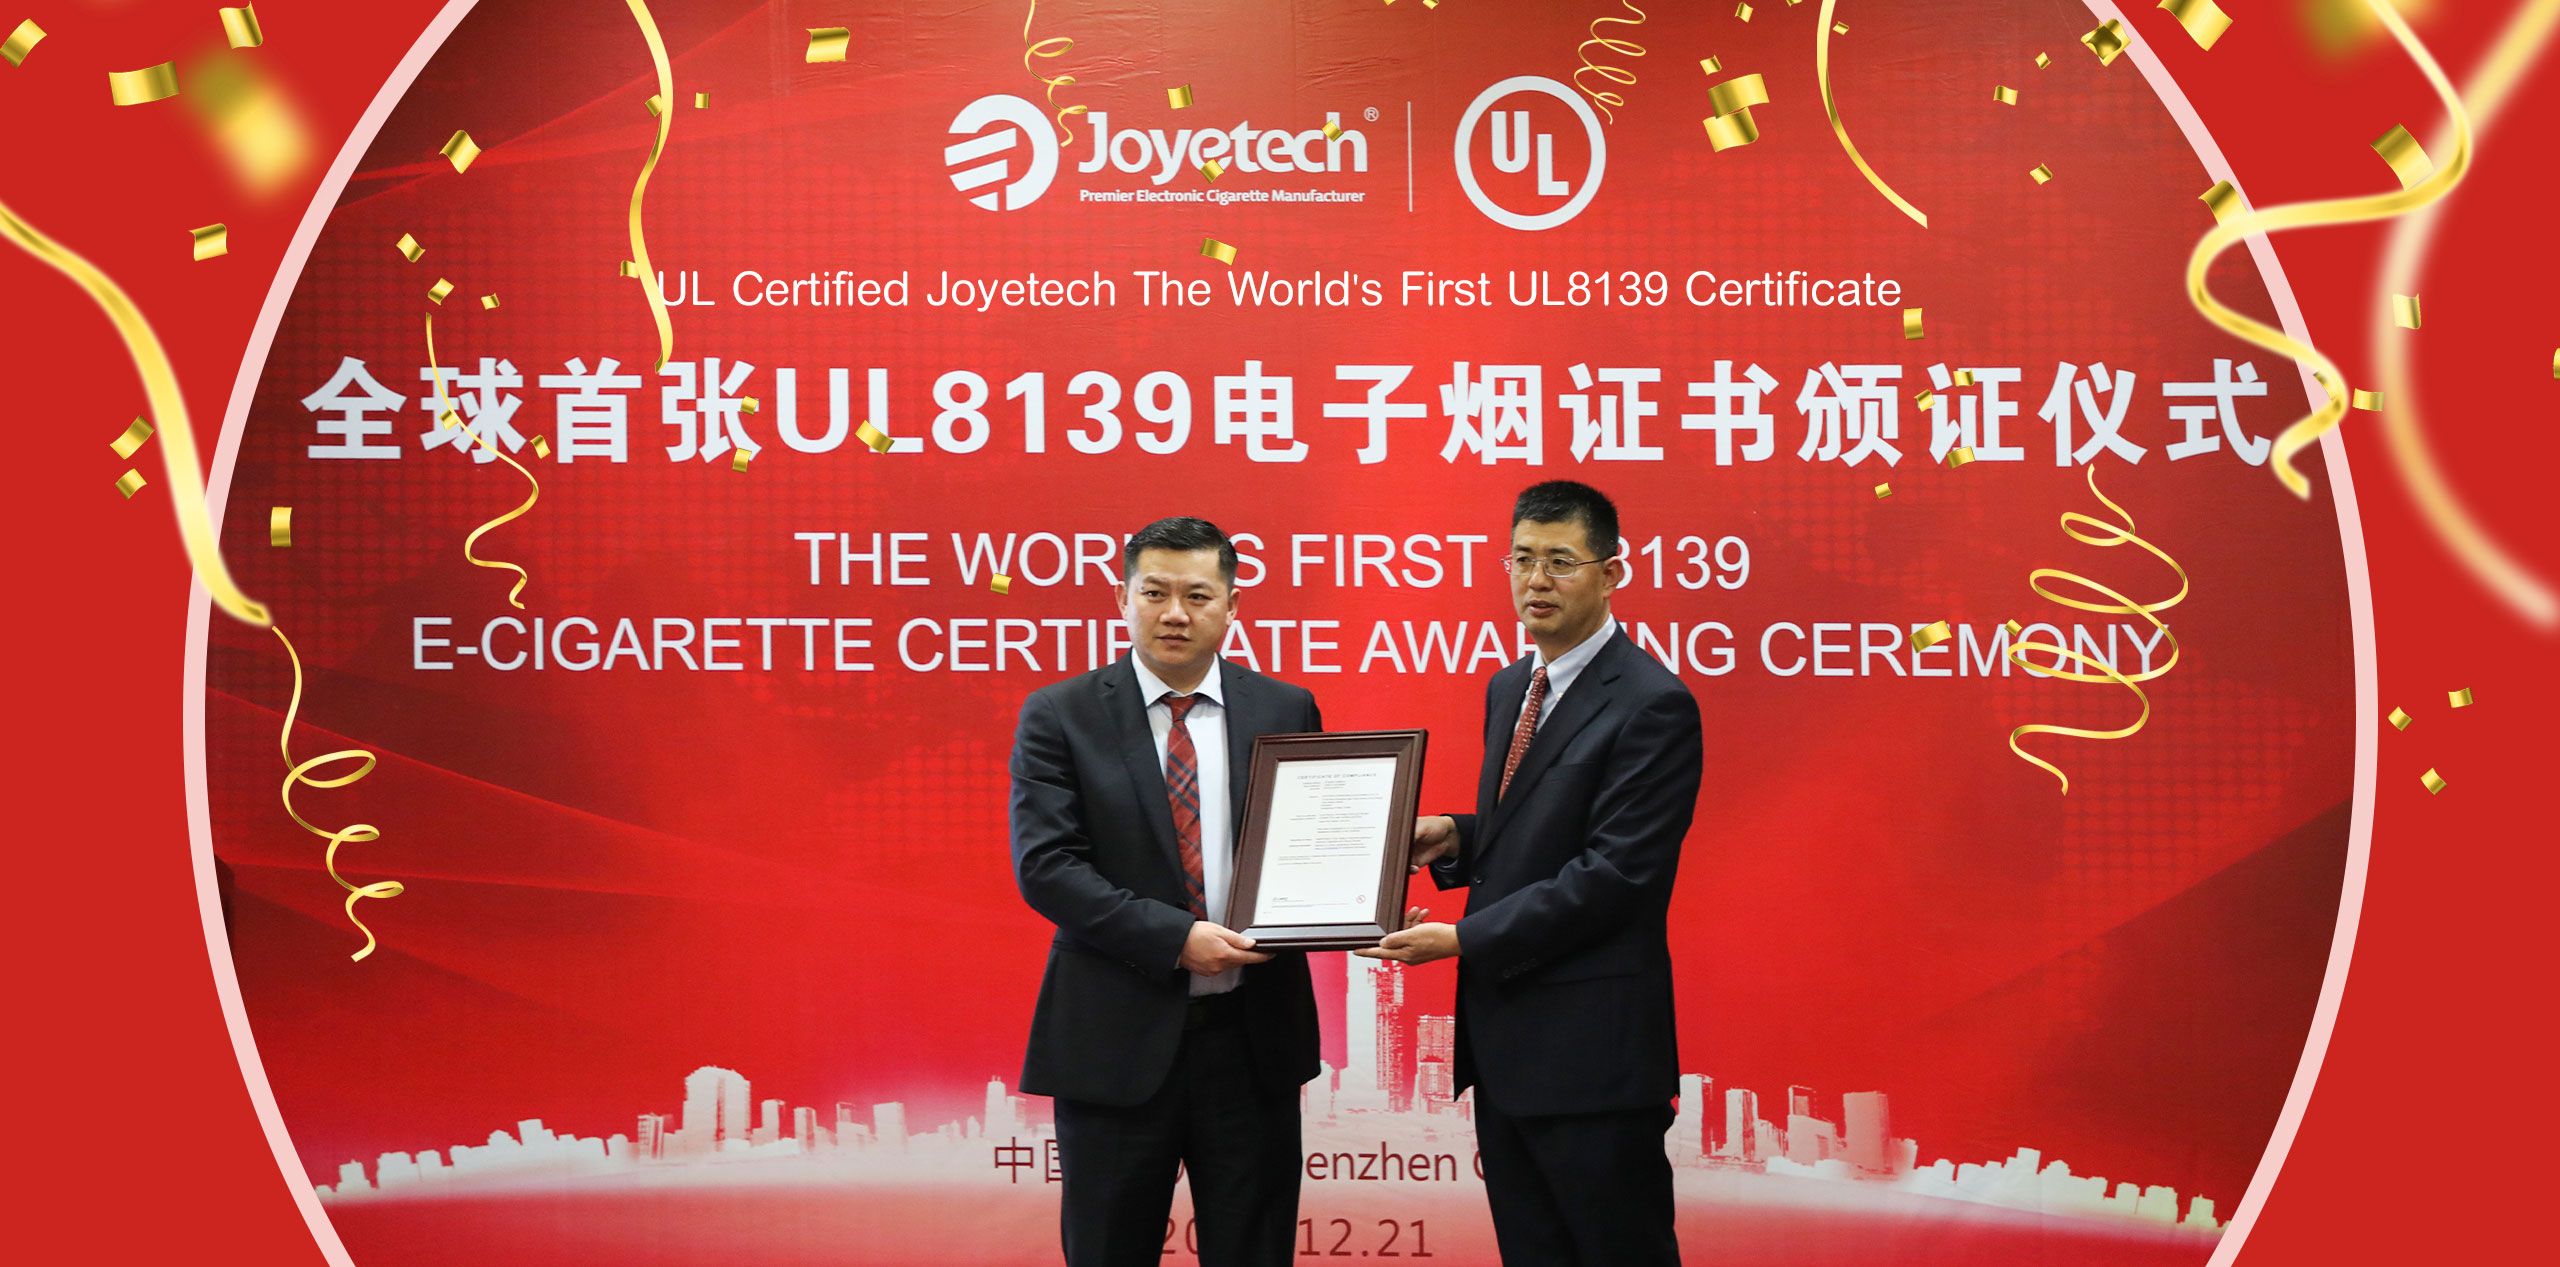 UL Officially Certified Joyetech The World's First UL8139 E-Cigarette Certificate